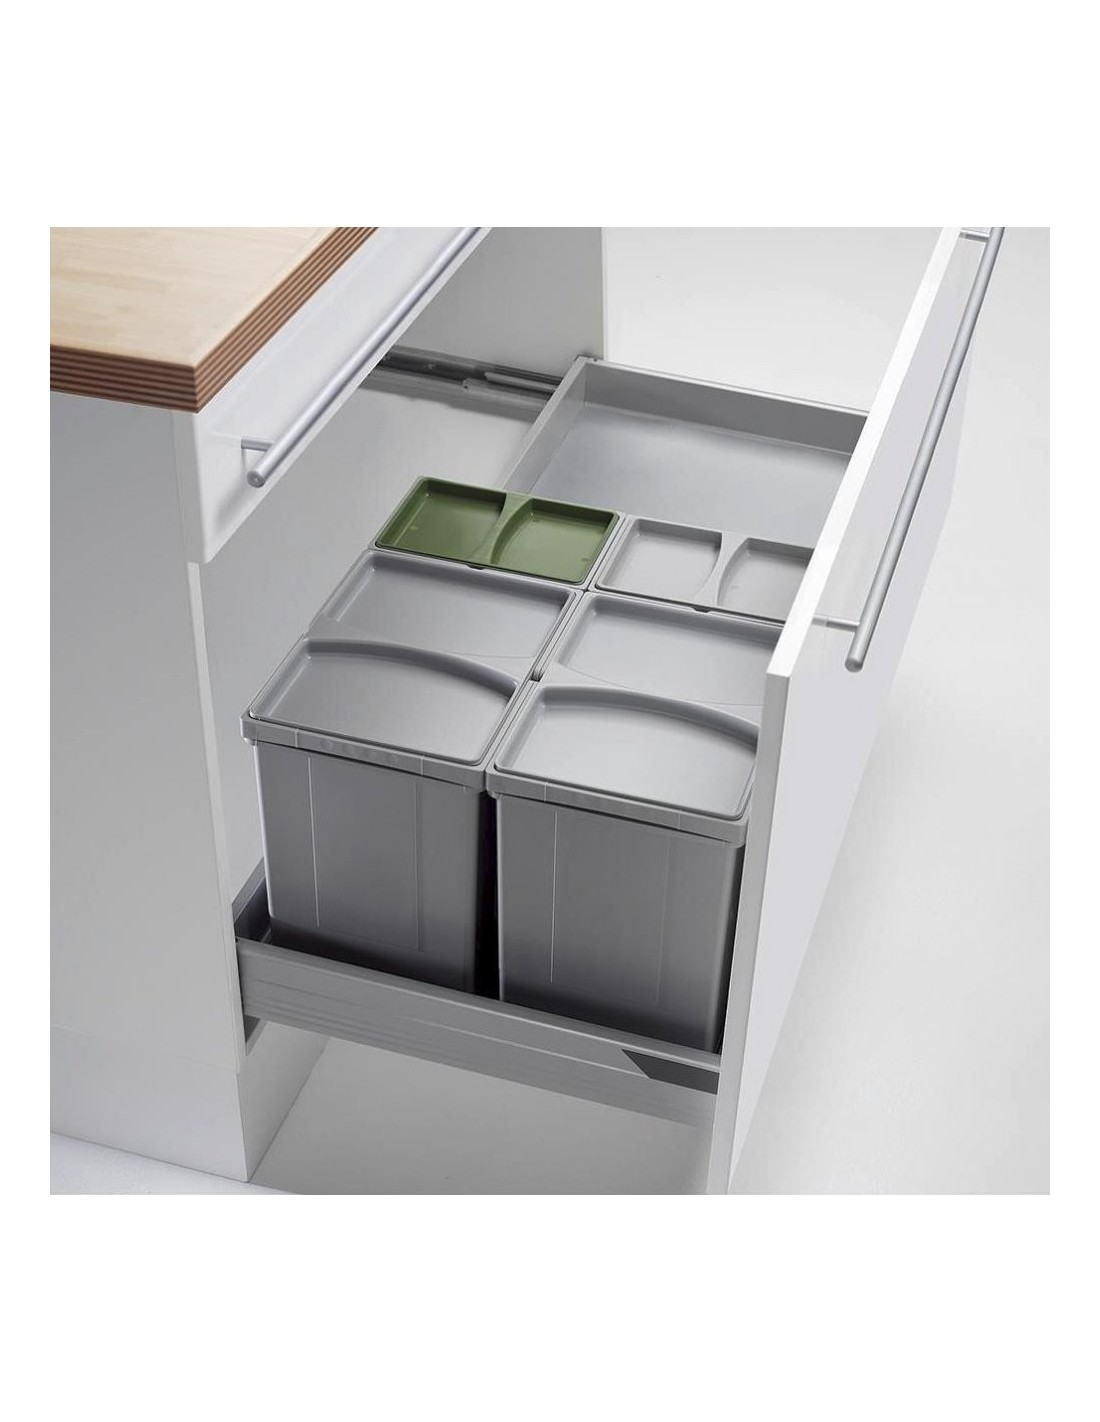 Blum kitchen waste bins besto blog for Kitchen cabinets 500mm depth